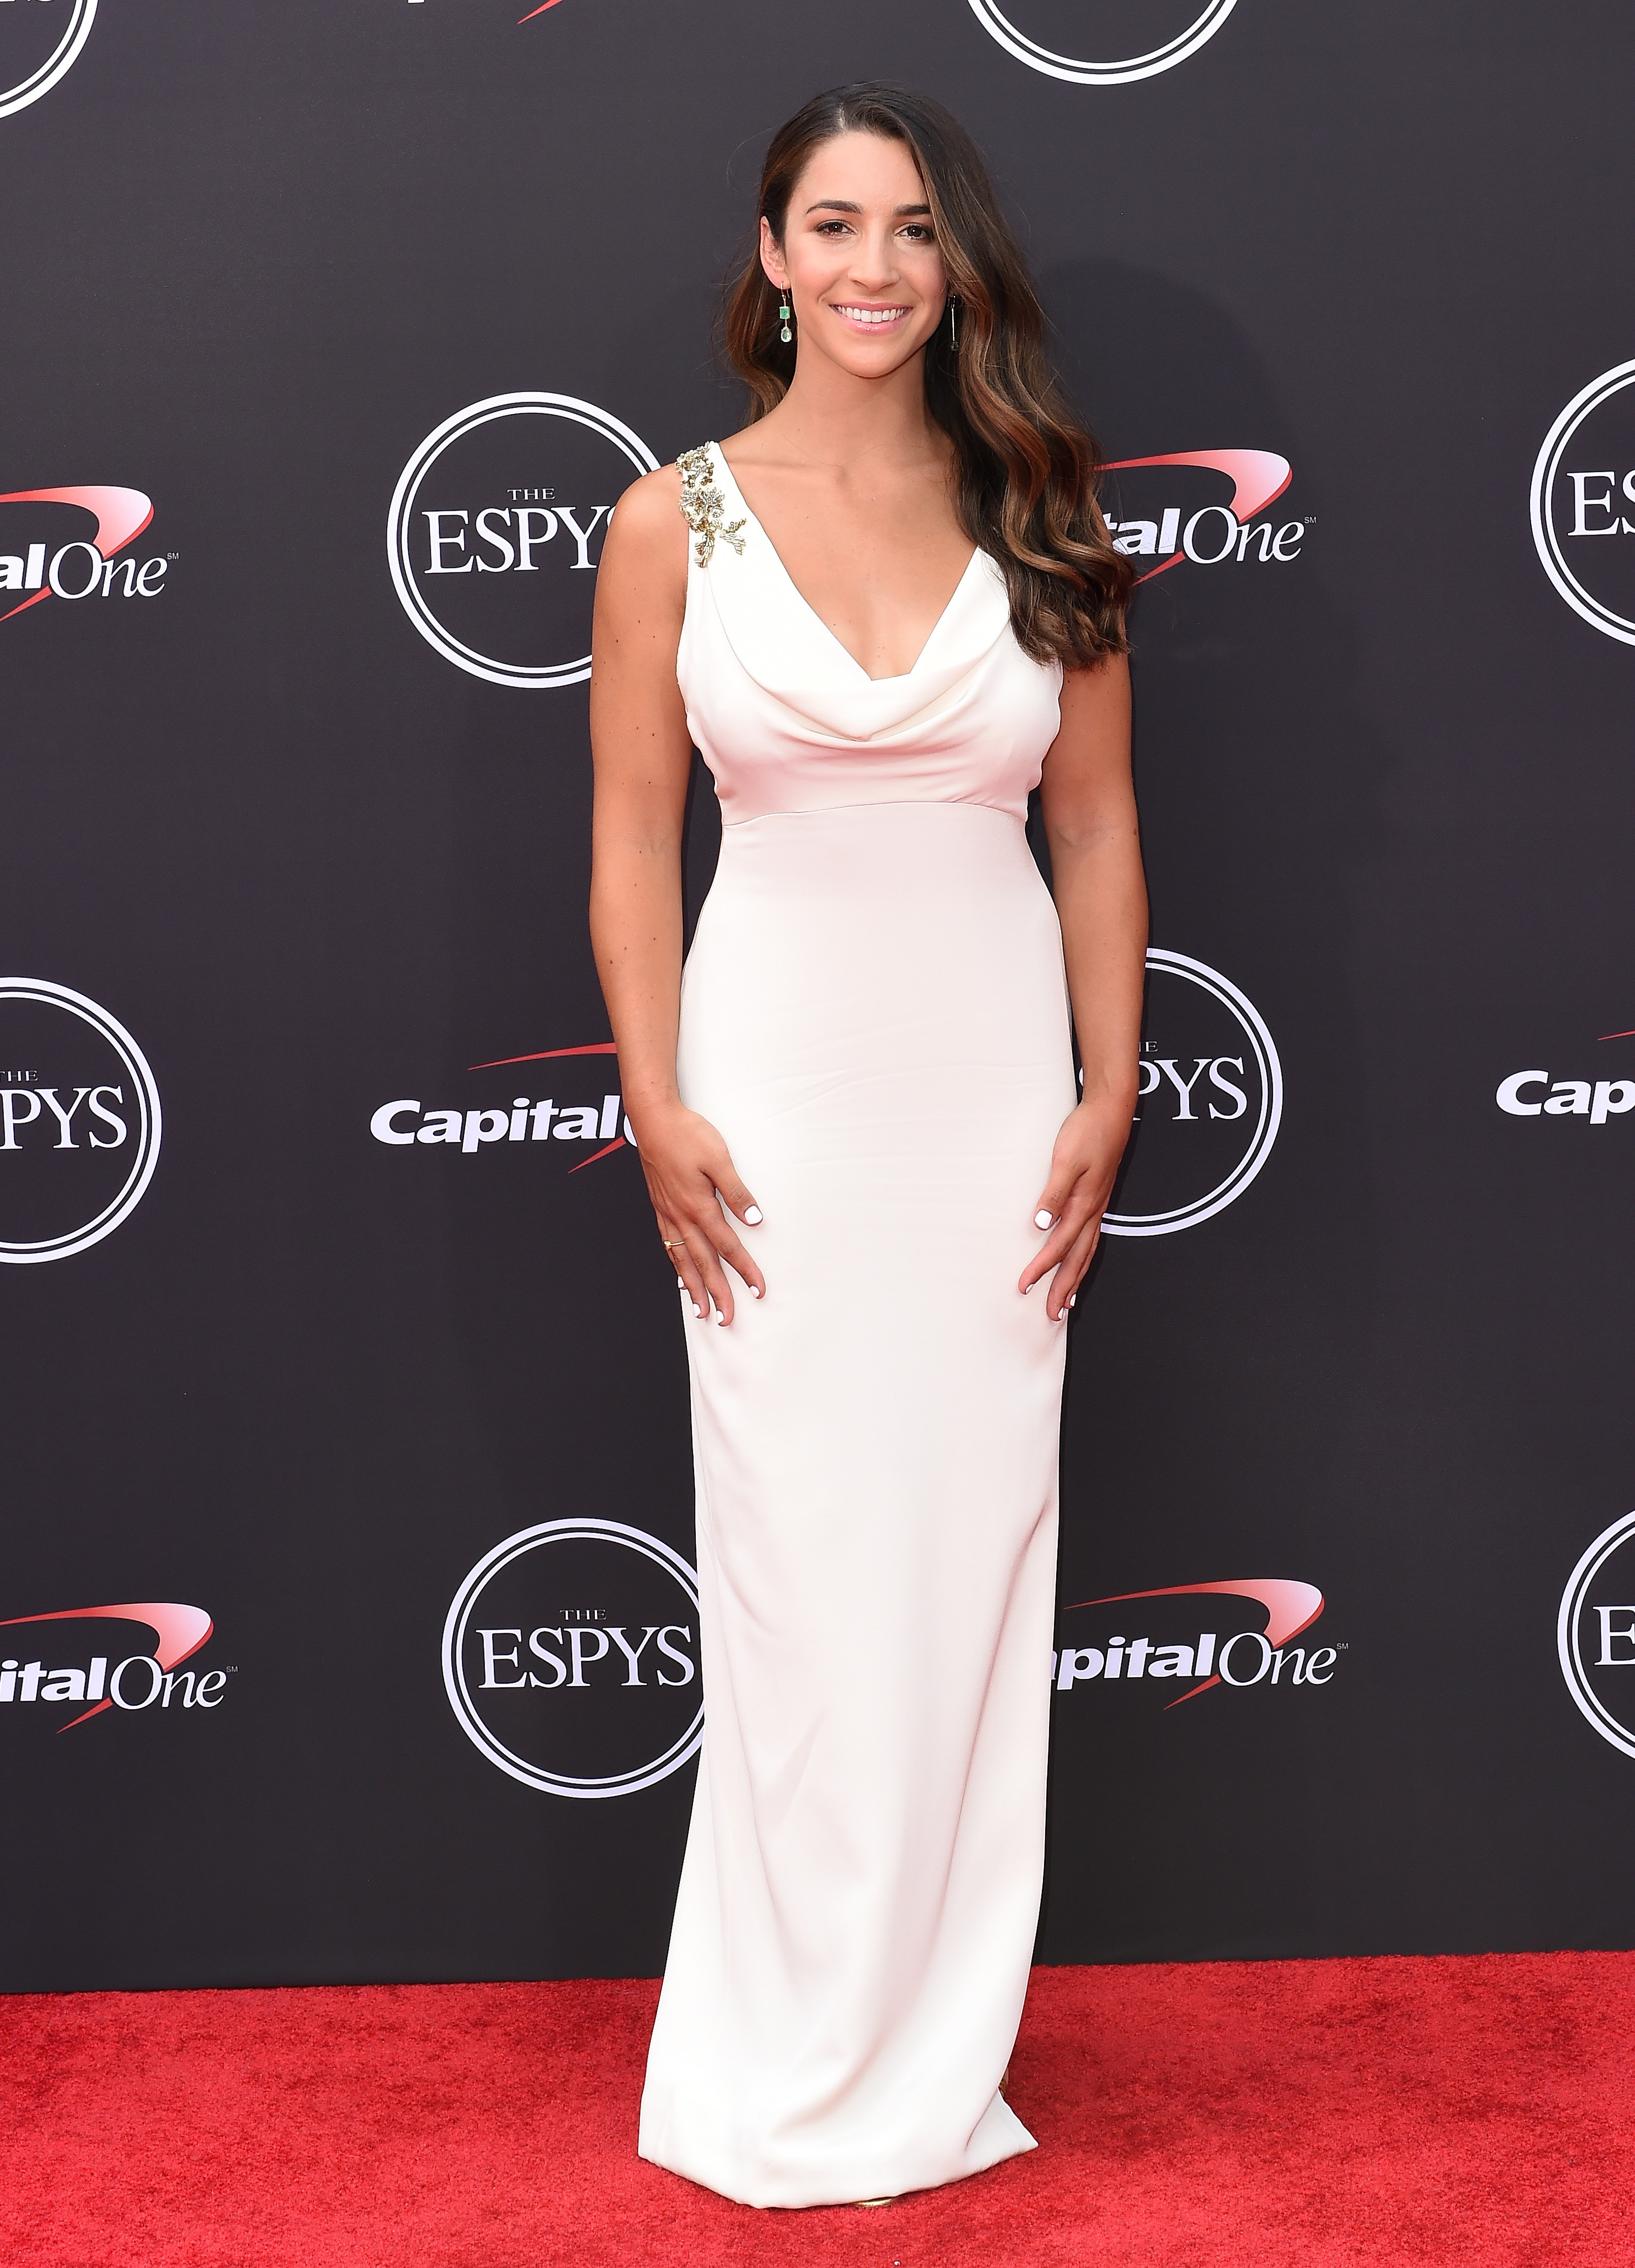 Aly Raisman Strong & Gorgeous at ESPYS – Punch Front